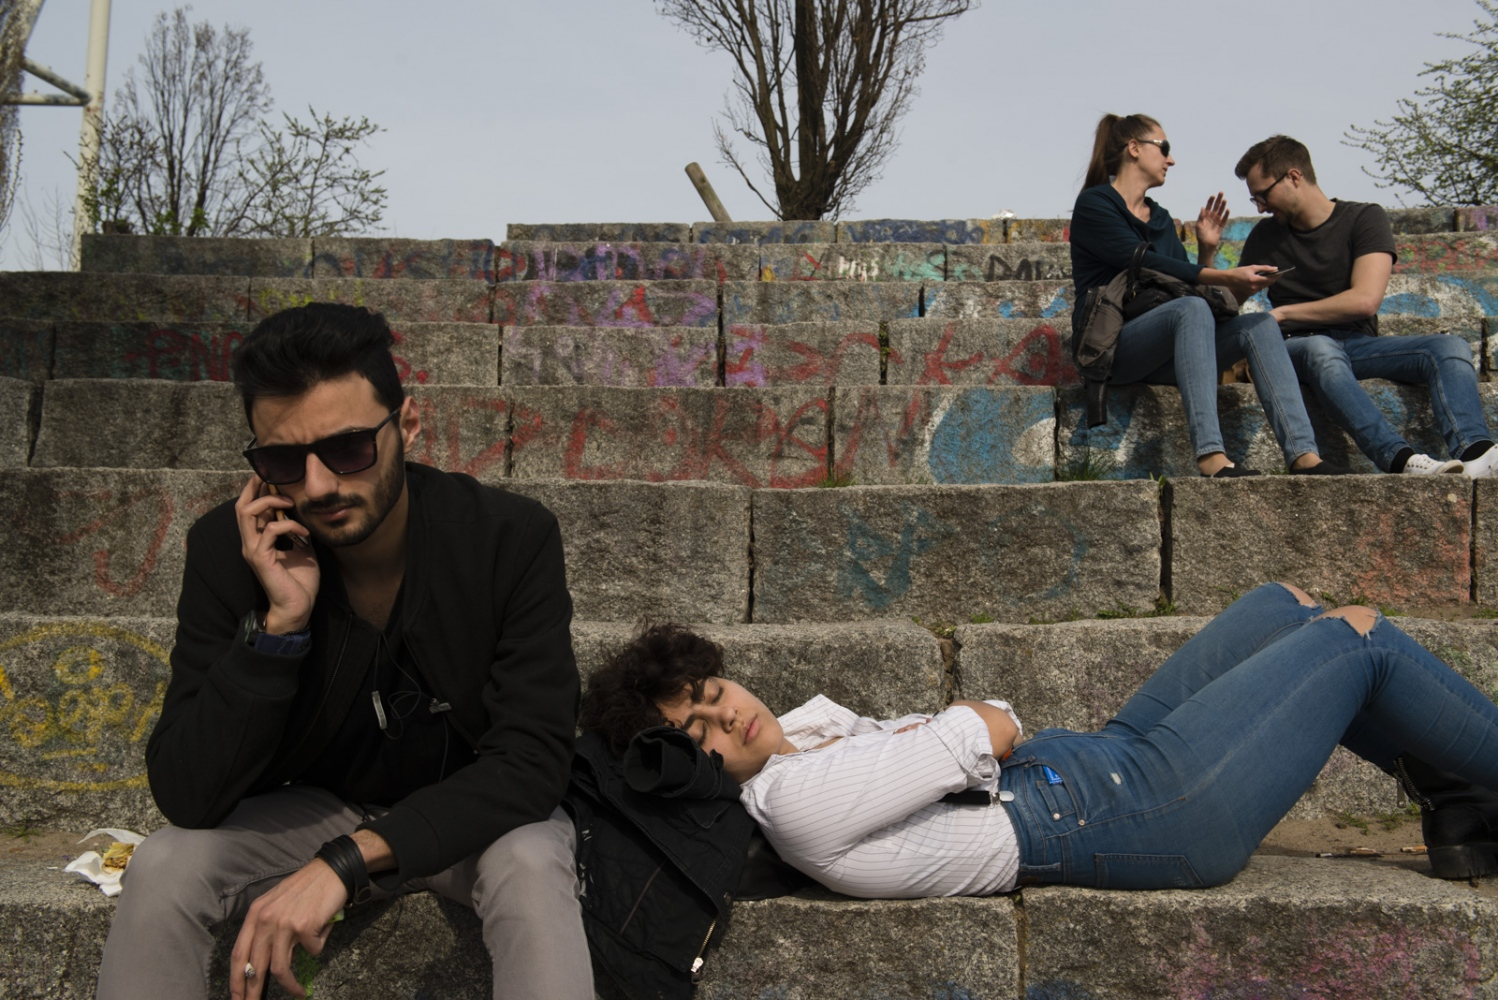 BERLIN | GERMANY | 2017-03-31 | Ramez (24) and Salwana (19) hang out at Mauer Park on a sunny saturday. The two Syrian friends met at language schools where both study German to enter university and have become close friends ever since. Ramez and Salwana have different reasons and have taken route out of Syria, but both chose Berlin as home and are well adapted to the german culture.